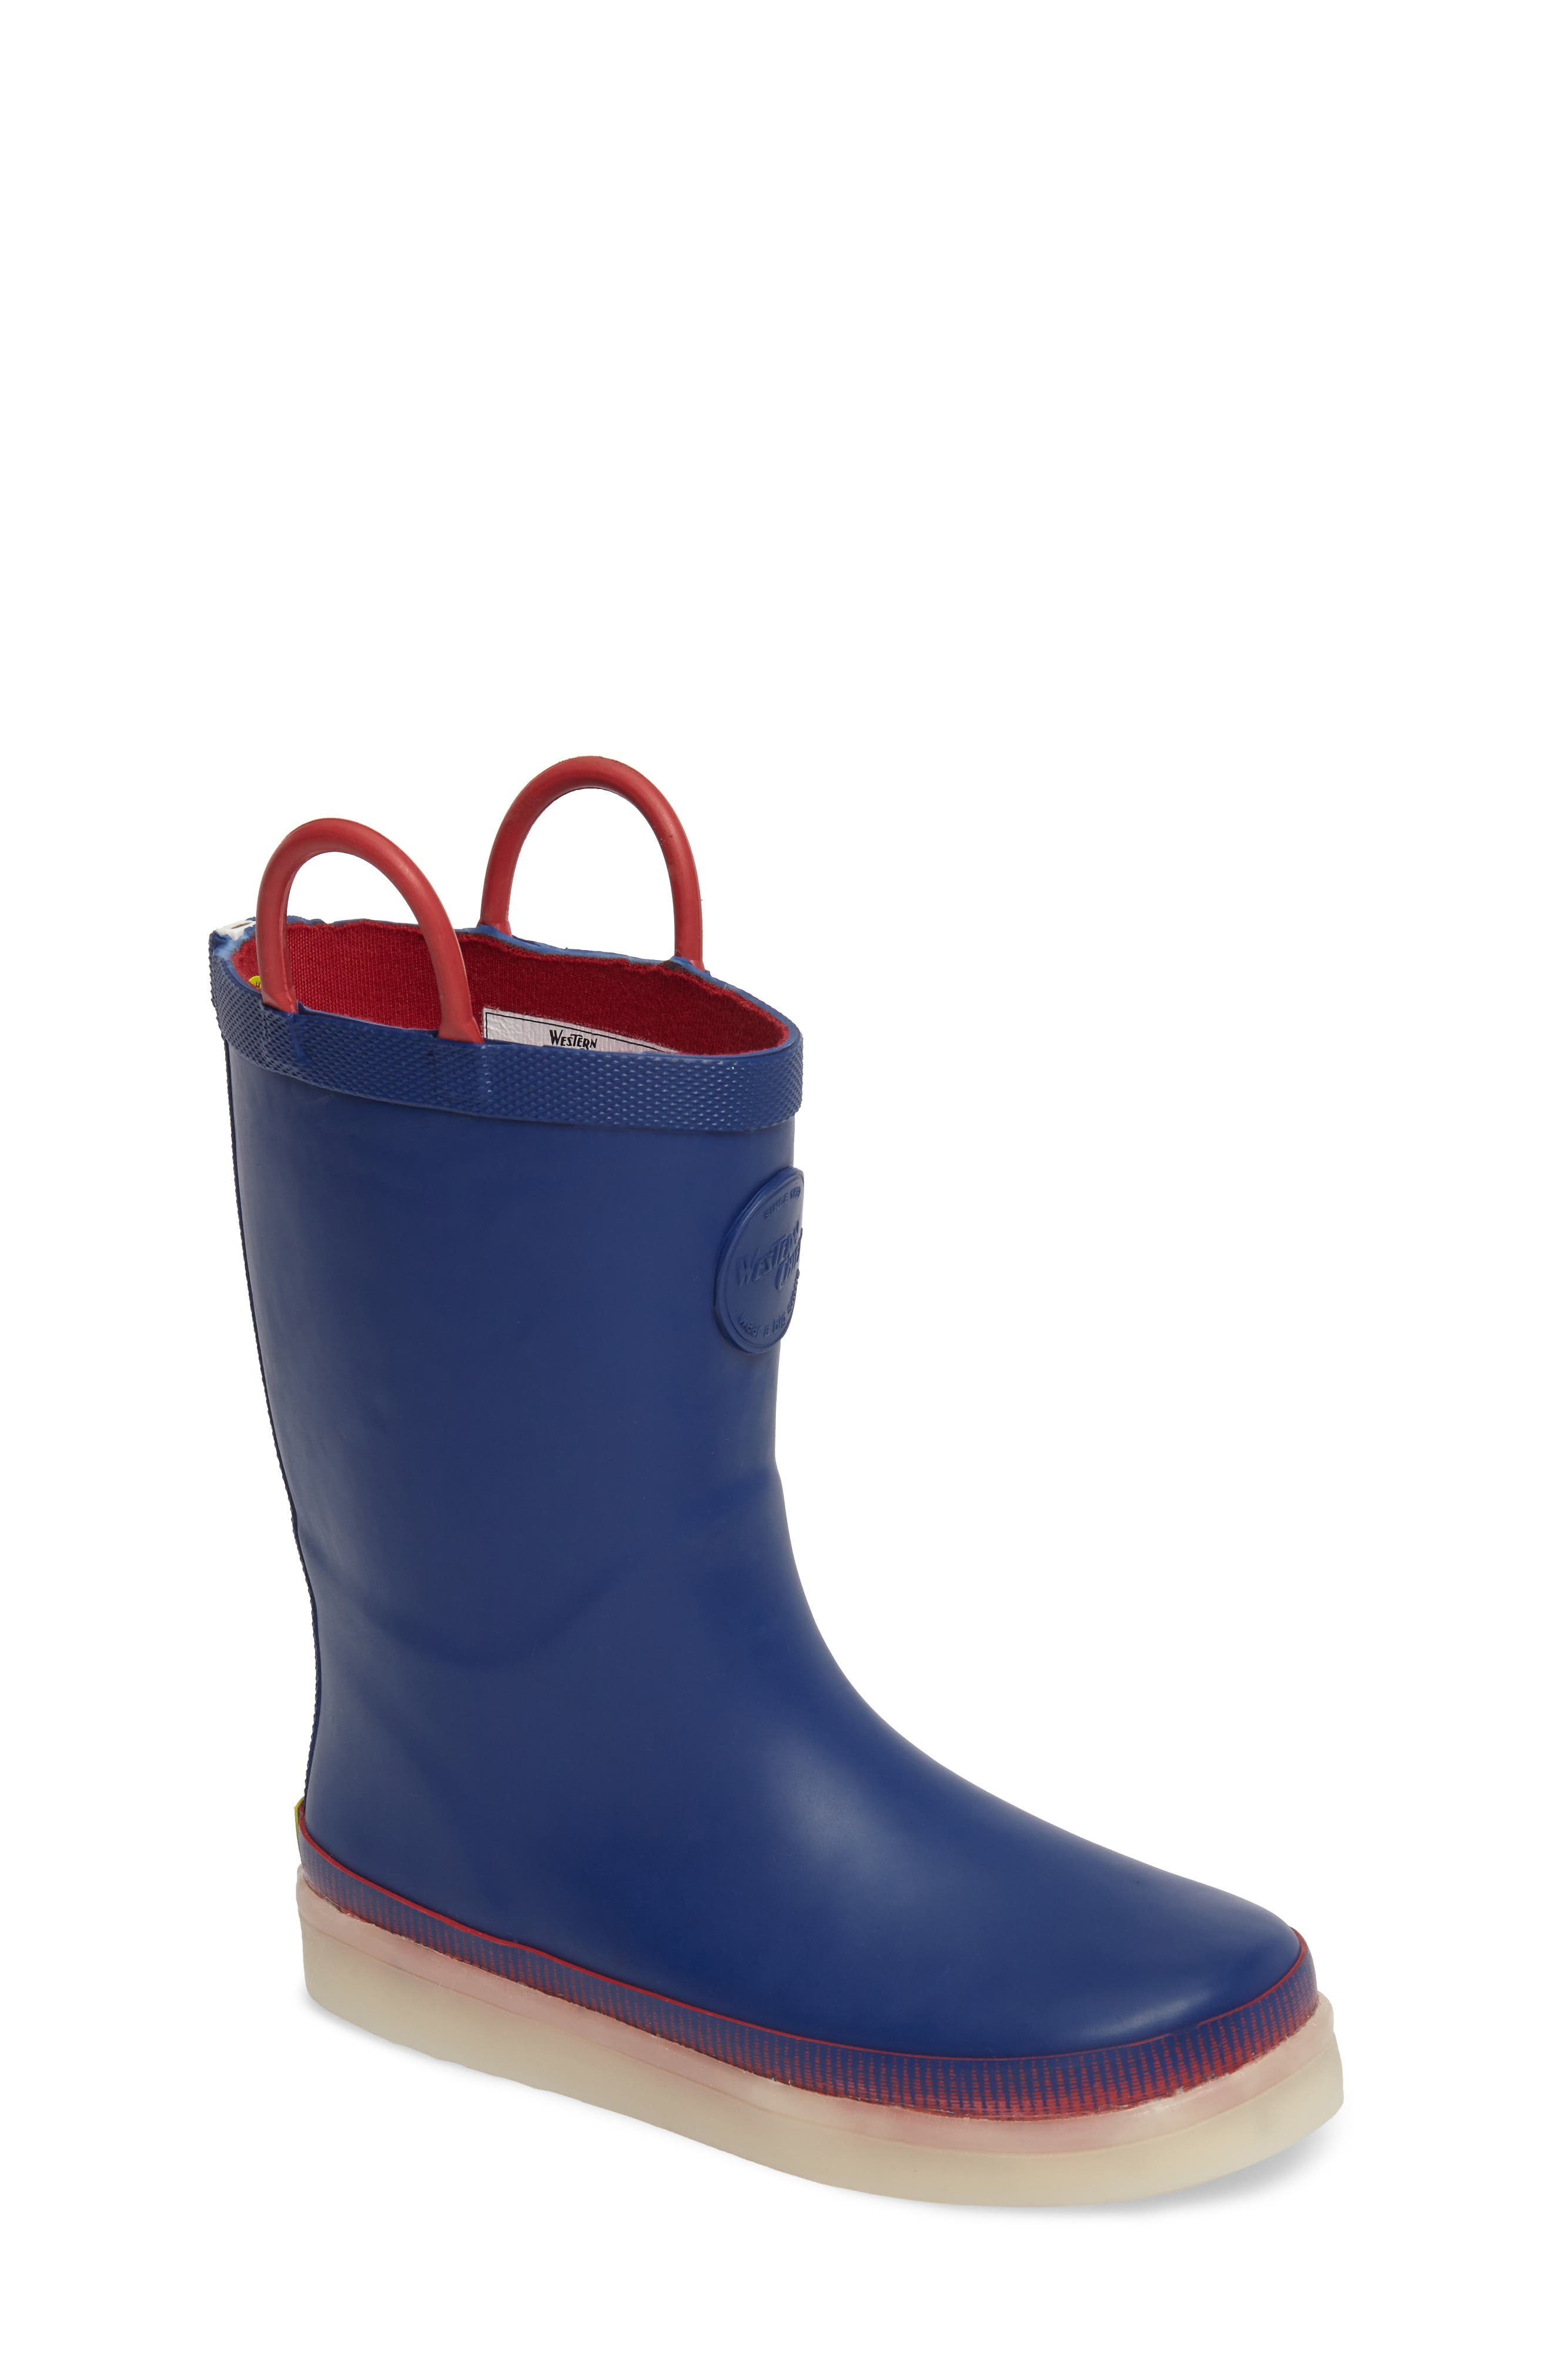 Tech Solid LED Rain Boot,                         Main,                         color, Navy